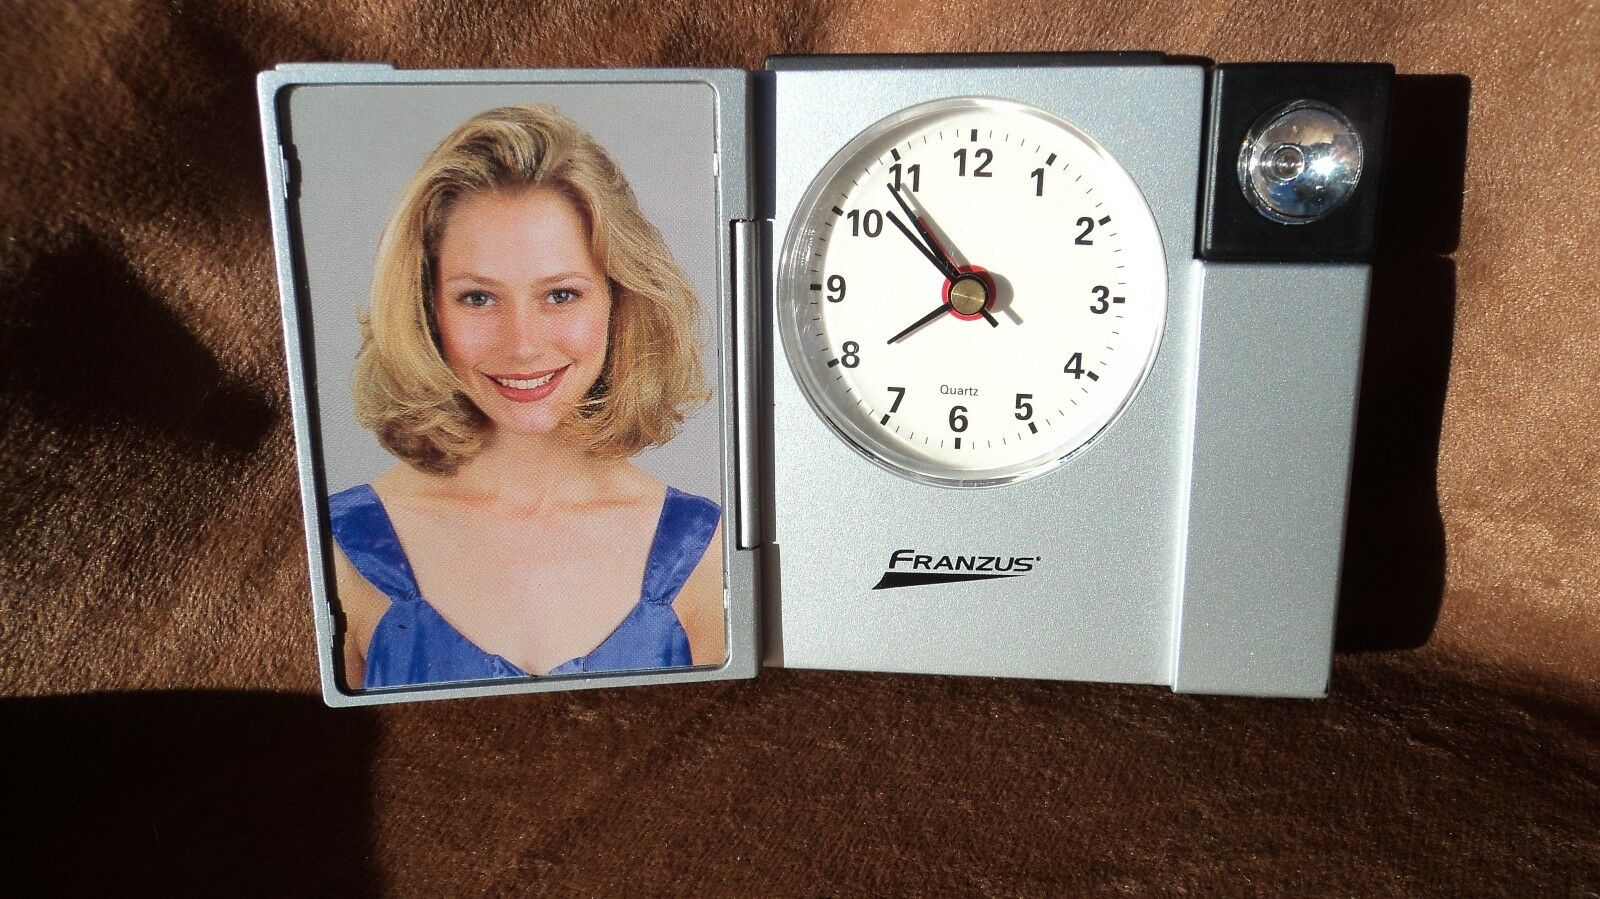 Franzus PS-407AC Alarm Clock W/Picture Frame And Flashlight